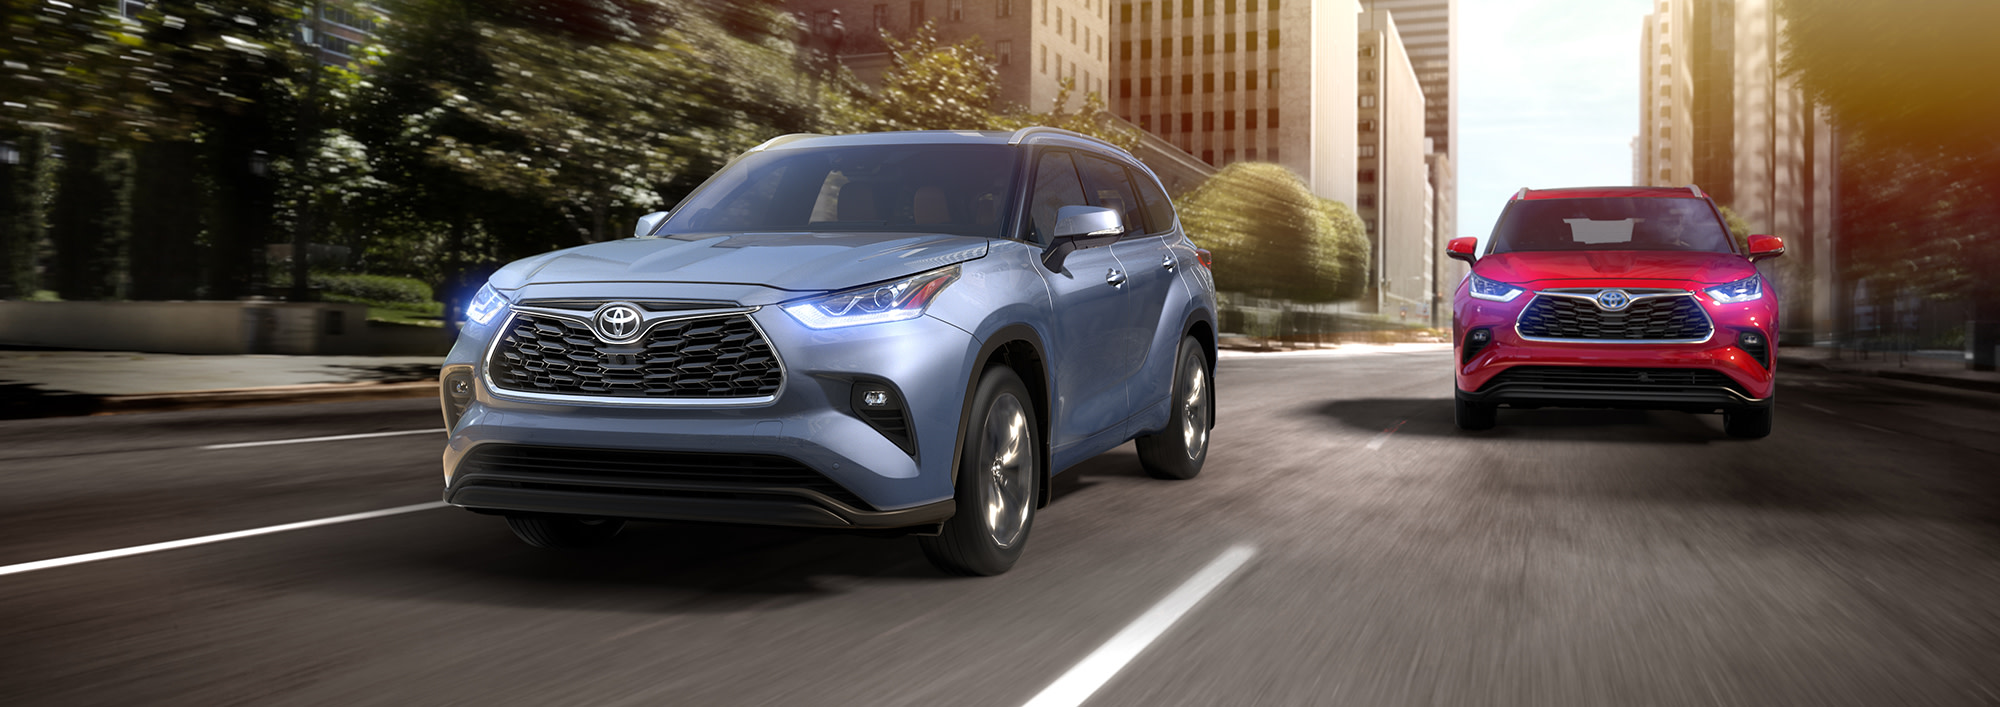 Comparison of the 2020 Toyota Highlander and the 2020 Kia Telluride at Tri County Toyota of Royersford | The 2020 Toyota Highlander and 2020 Toyota Highlander Hybrid Driving Through City